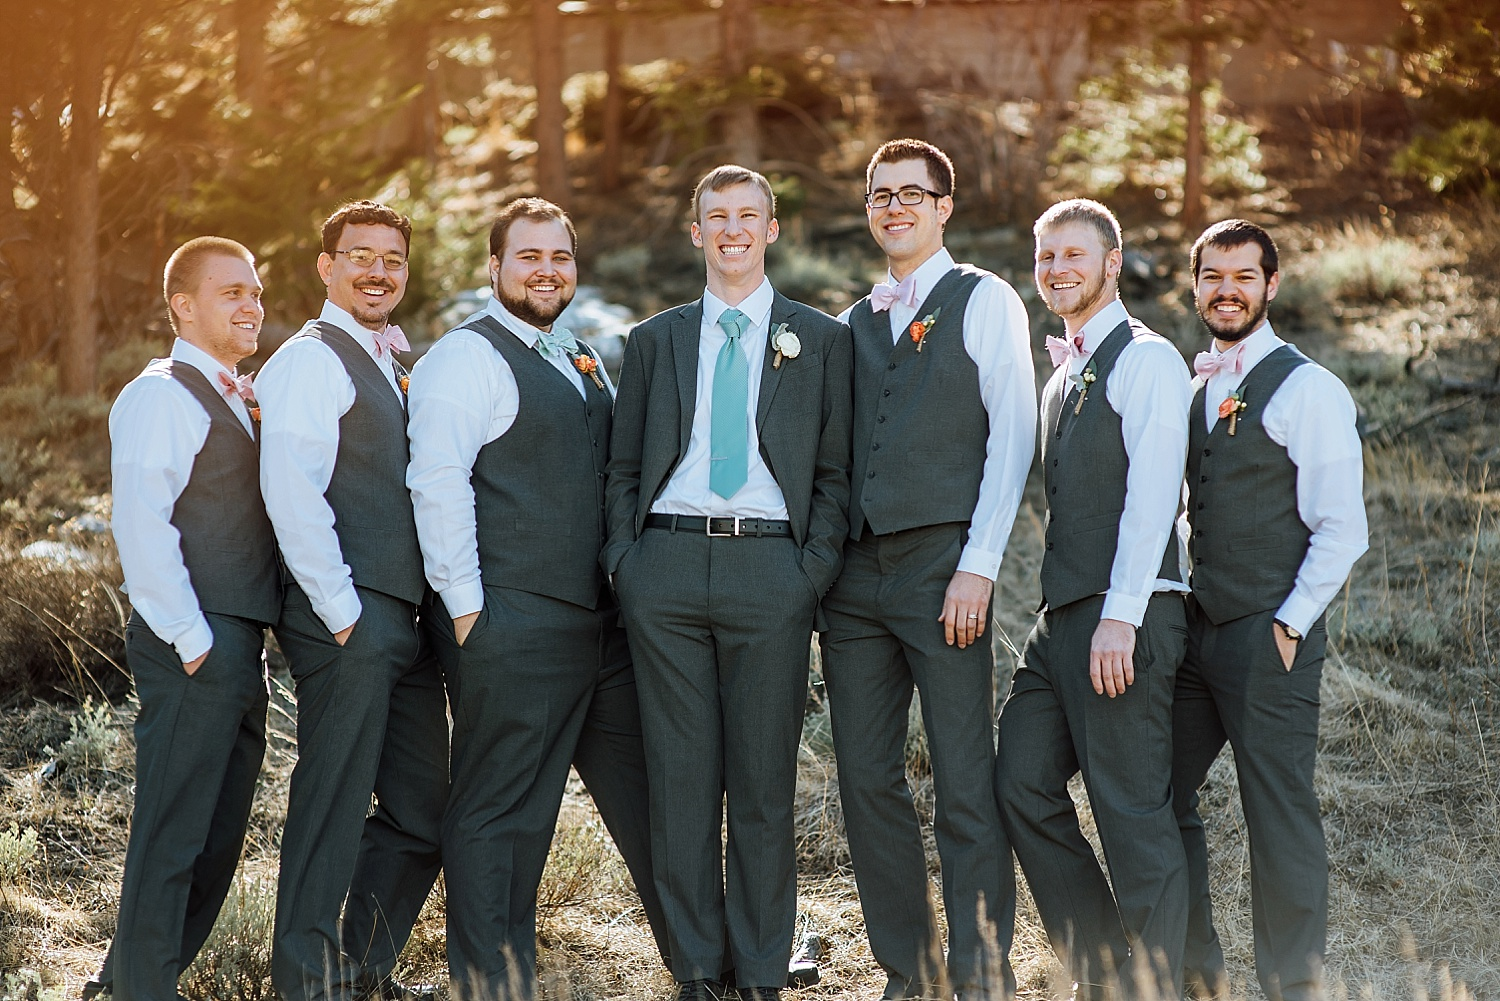 I love the light pink and tiffany blue wedding color scheme for the groomsmen. Such a nice mountain wedding in Estes Park, Colorado.Photo by Maddie Mae Photography